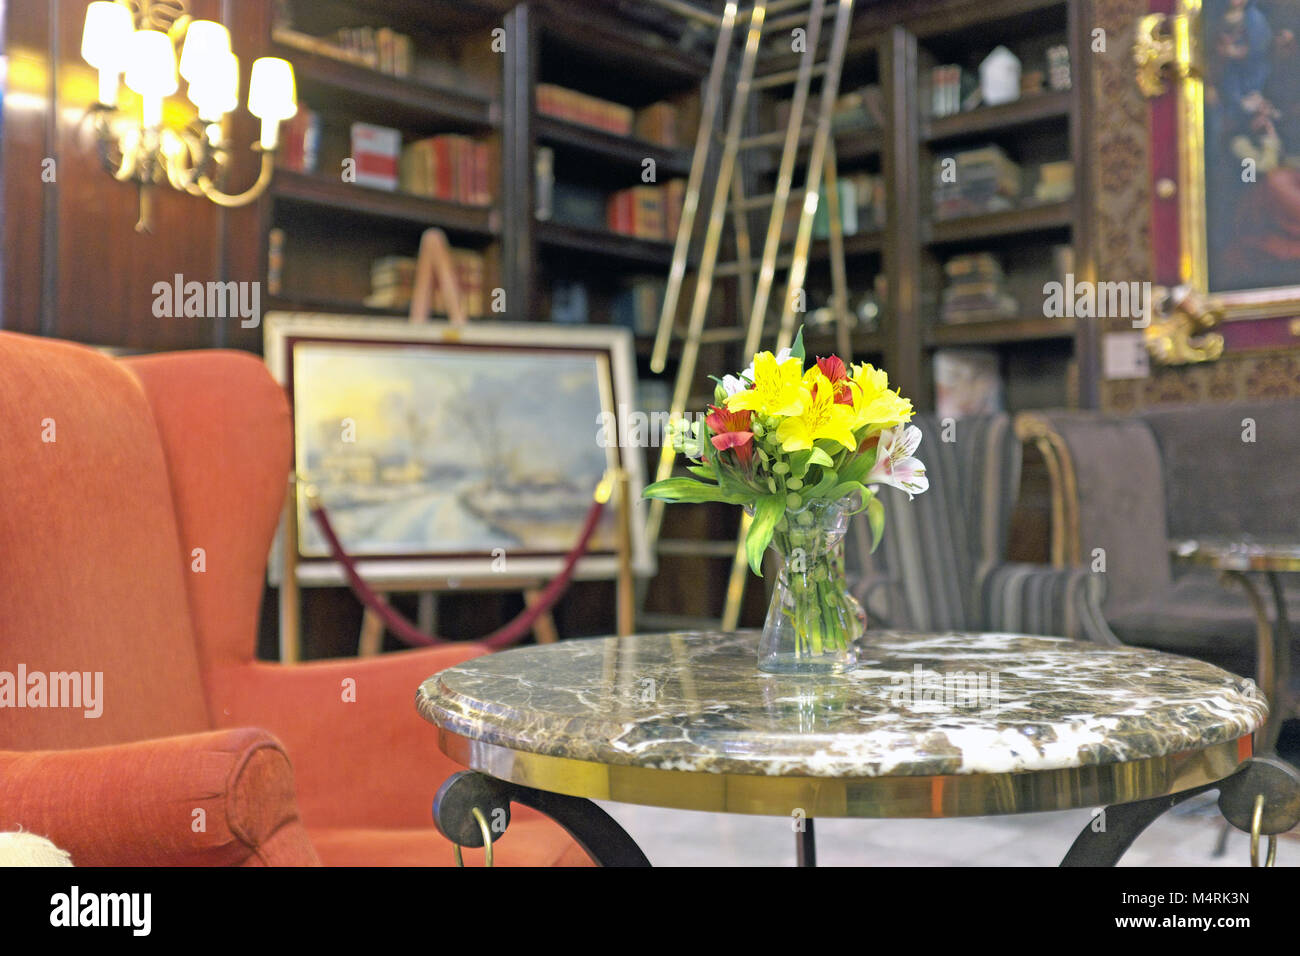 https www alamy com stock photo an orange chaucer wing chair next to a cocktail table with fresh flowers 175082201 html